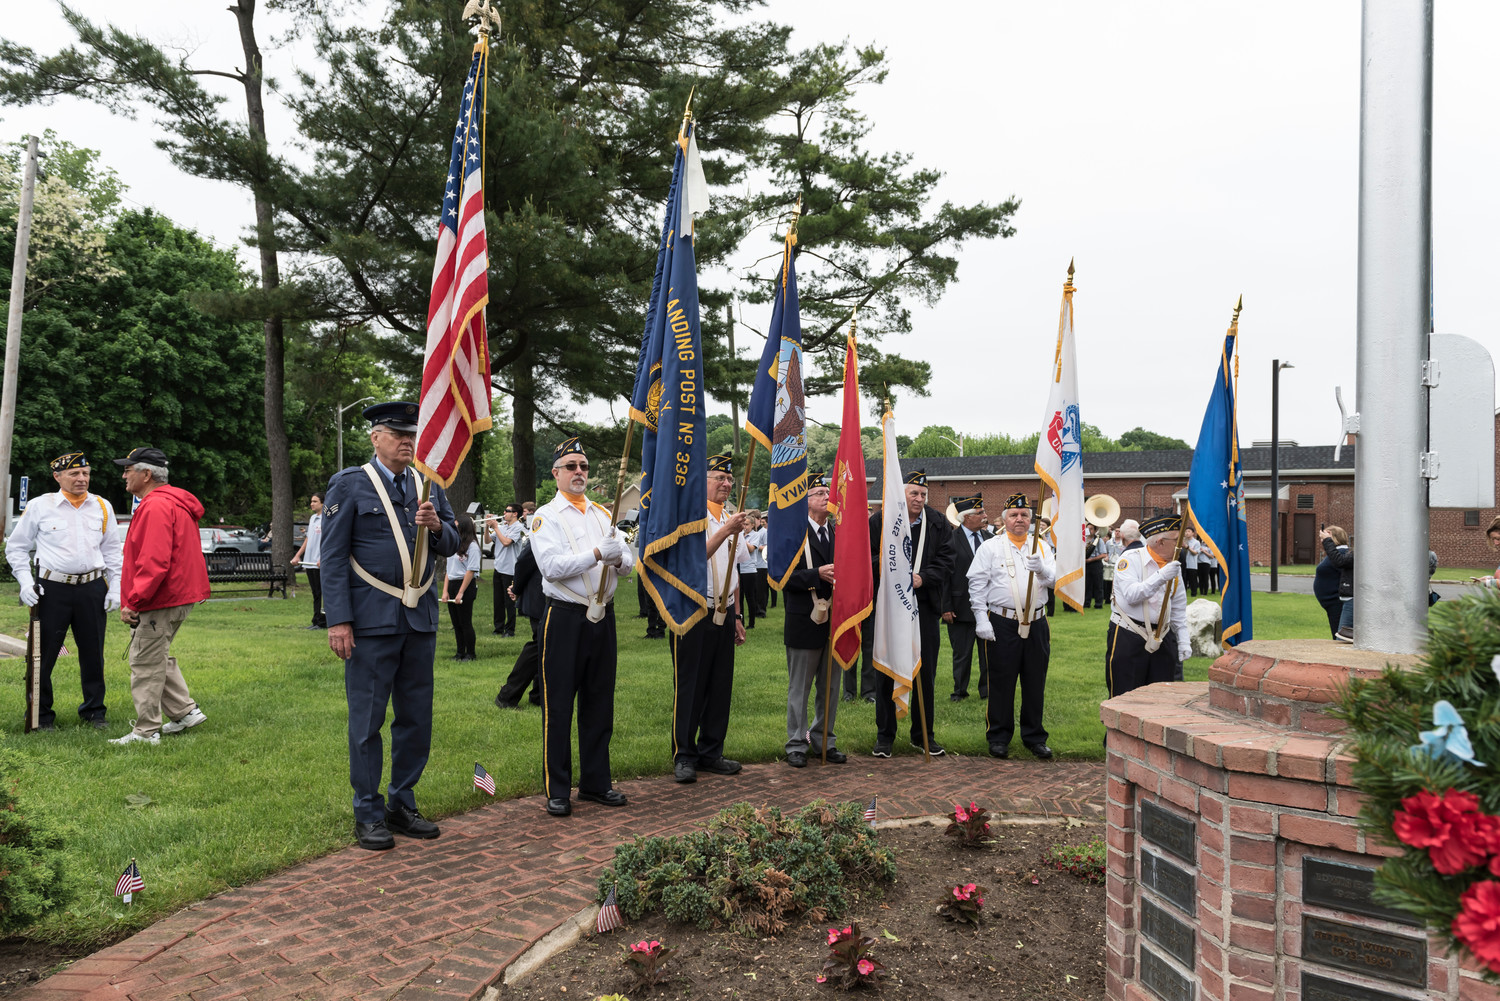 The Glen Head-Glenwood Landing American Legion Color Guard, left, during the ceremonial invocation.